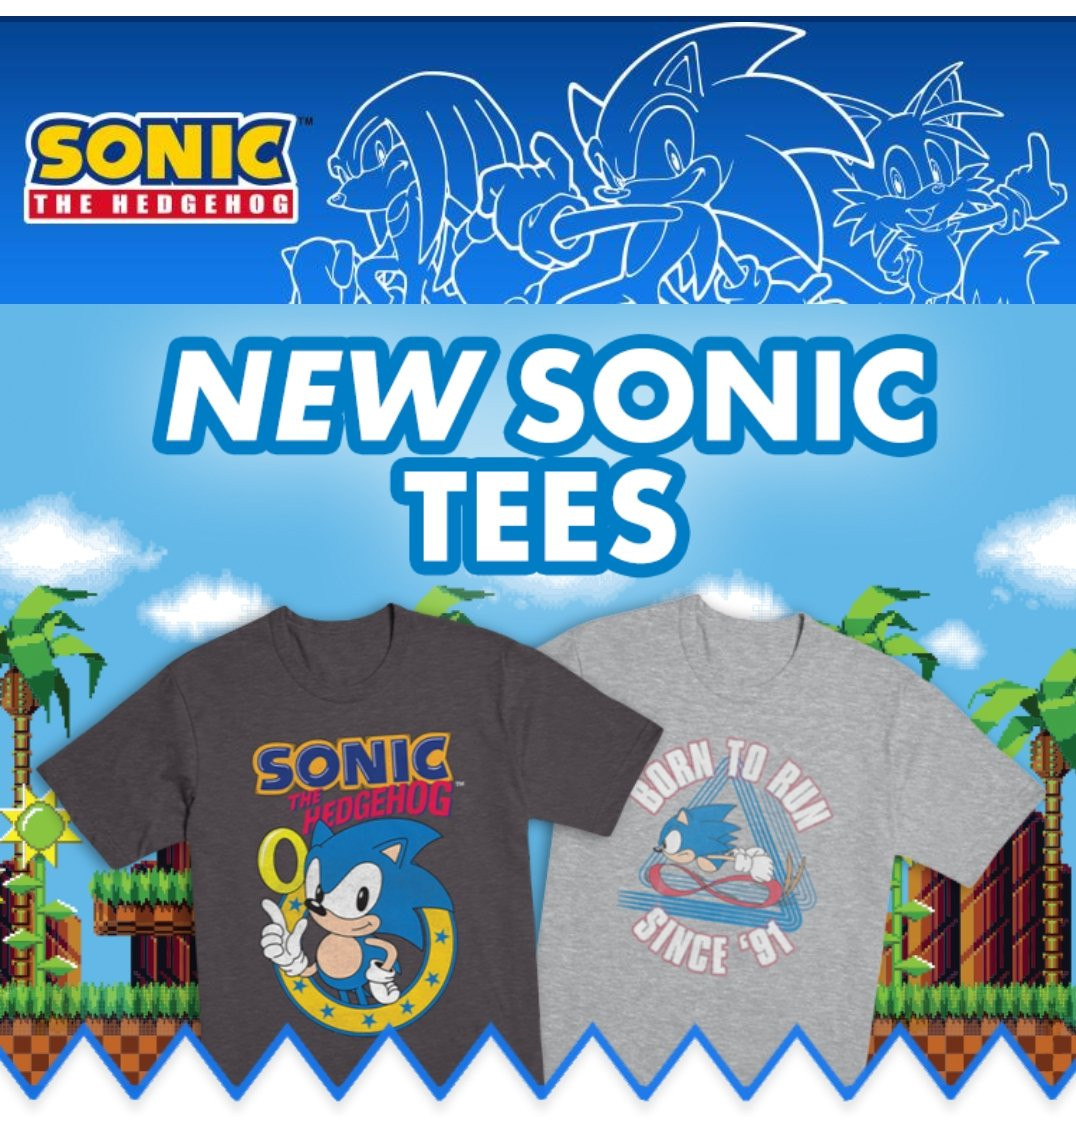 ae826f73 Official SEGA Shop is now available to check out. So much Sonic merchandise!  →https://shop.sega.com pic.twitter.com/Csw6PzLbVQ